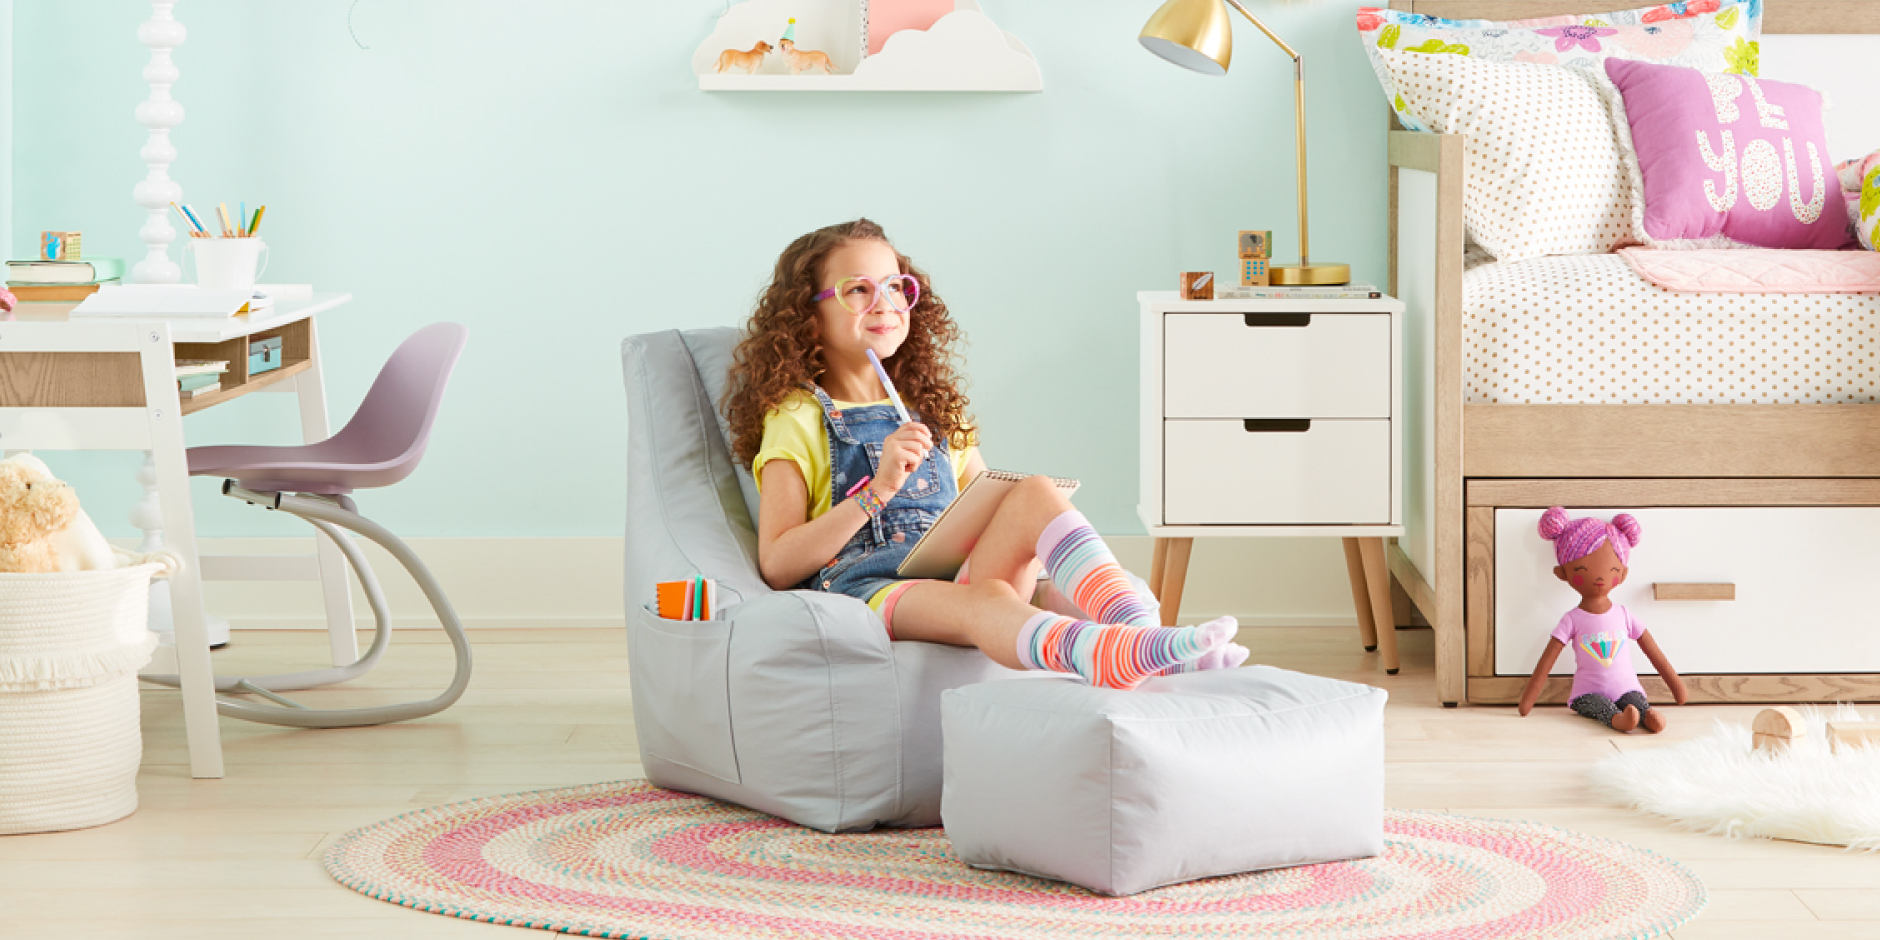 A little girl relaxes on a grey chair within a colorful bedroom